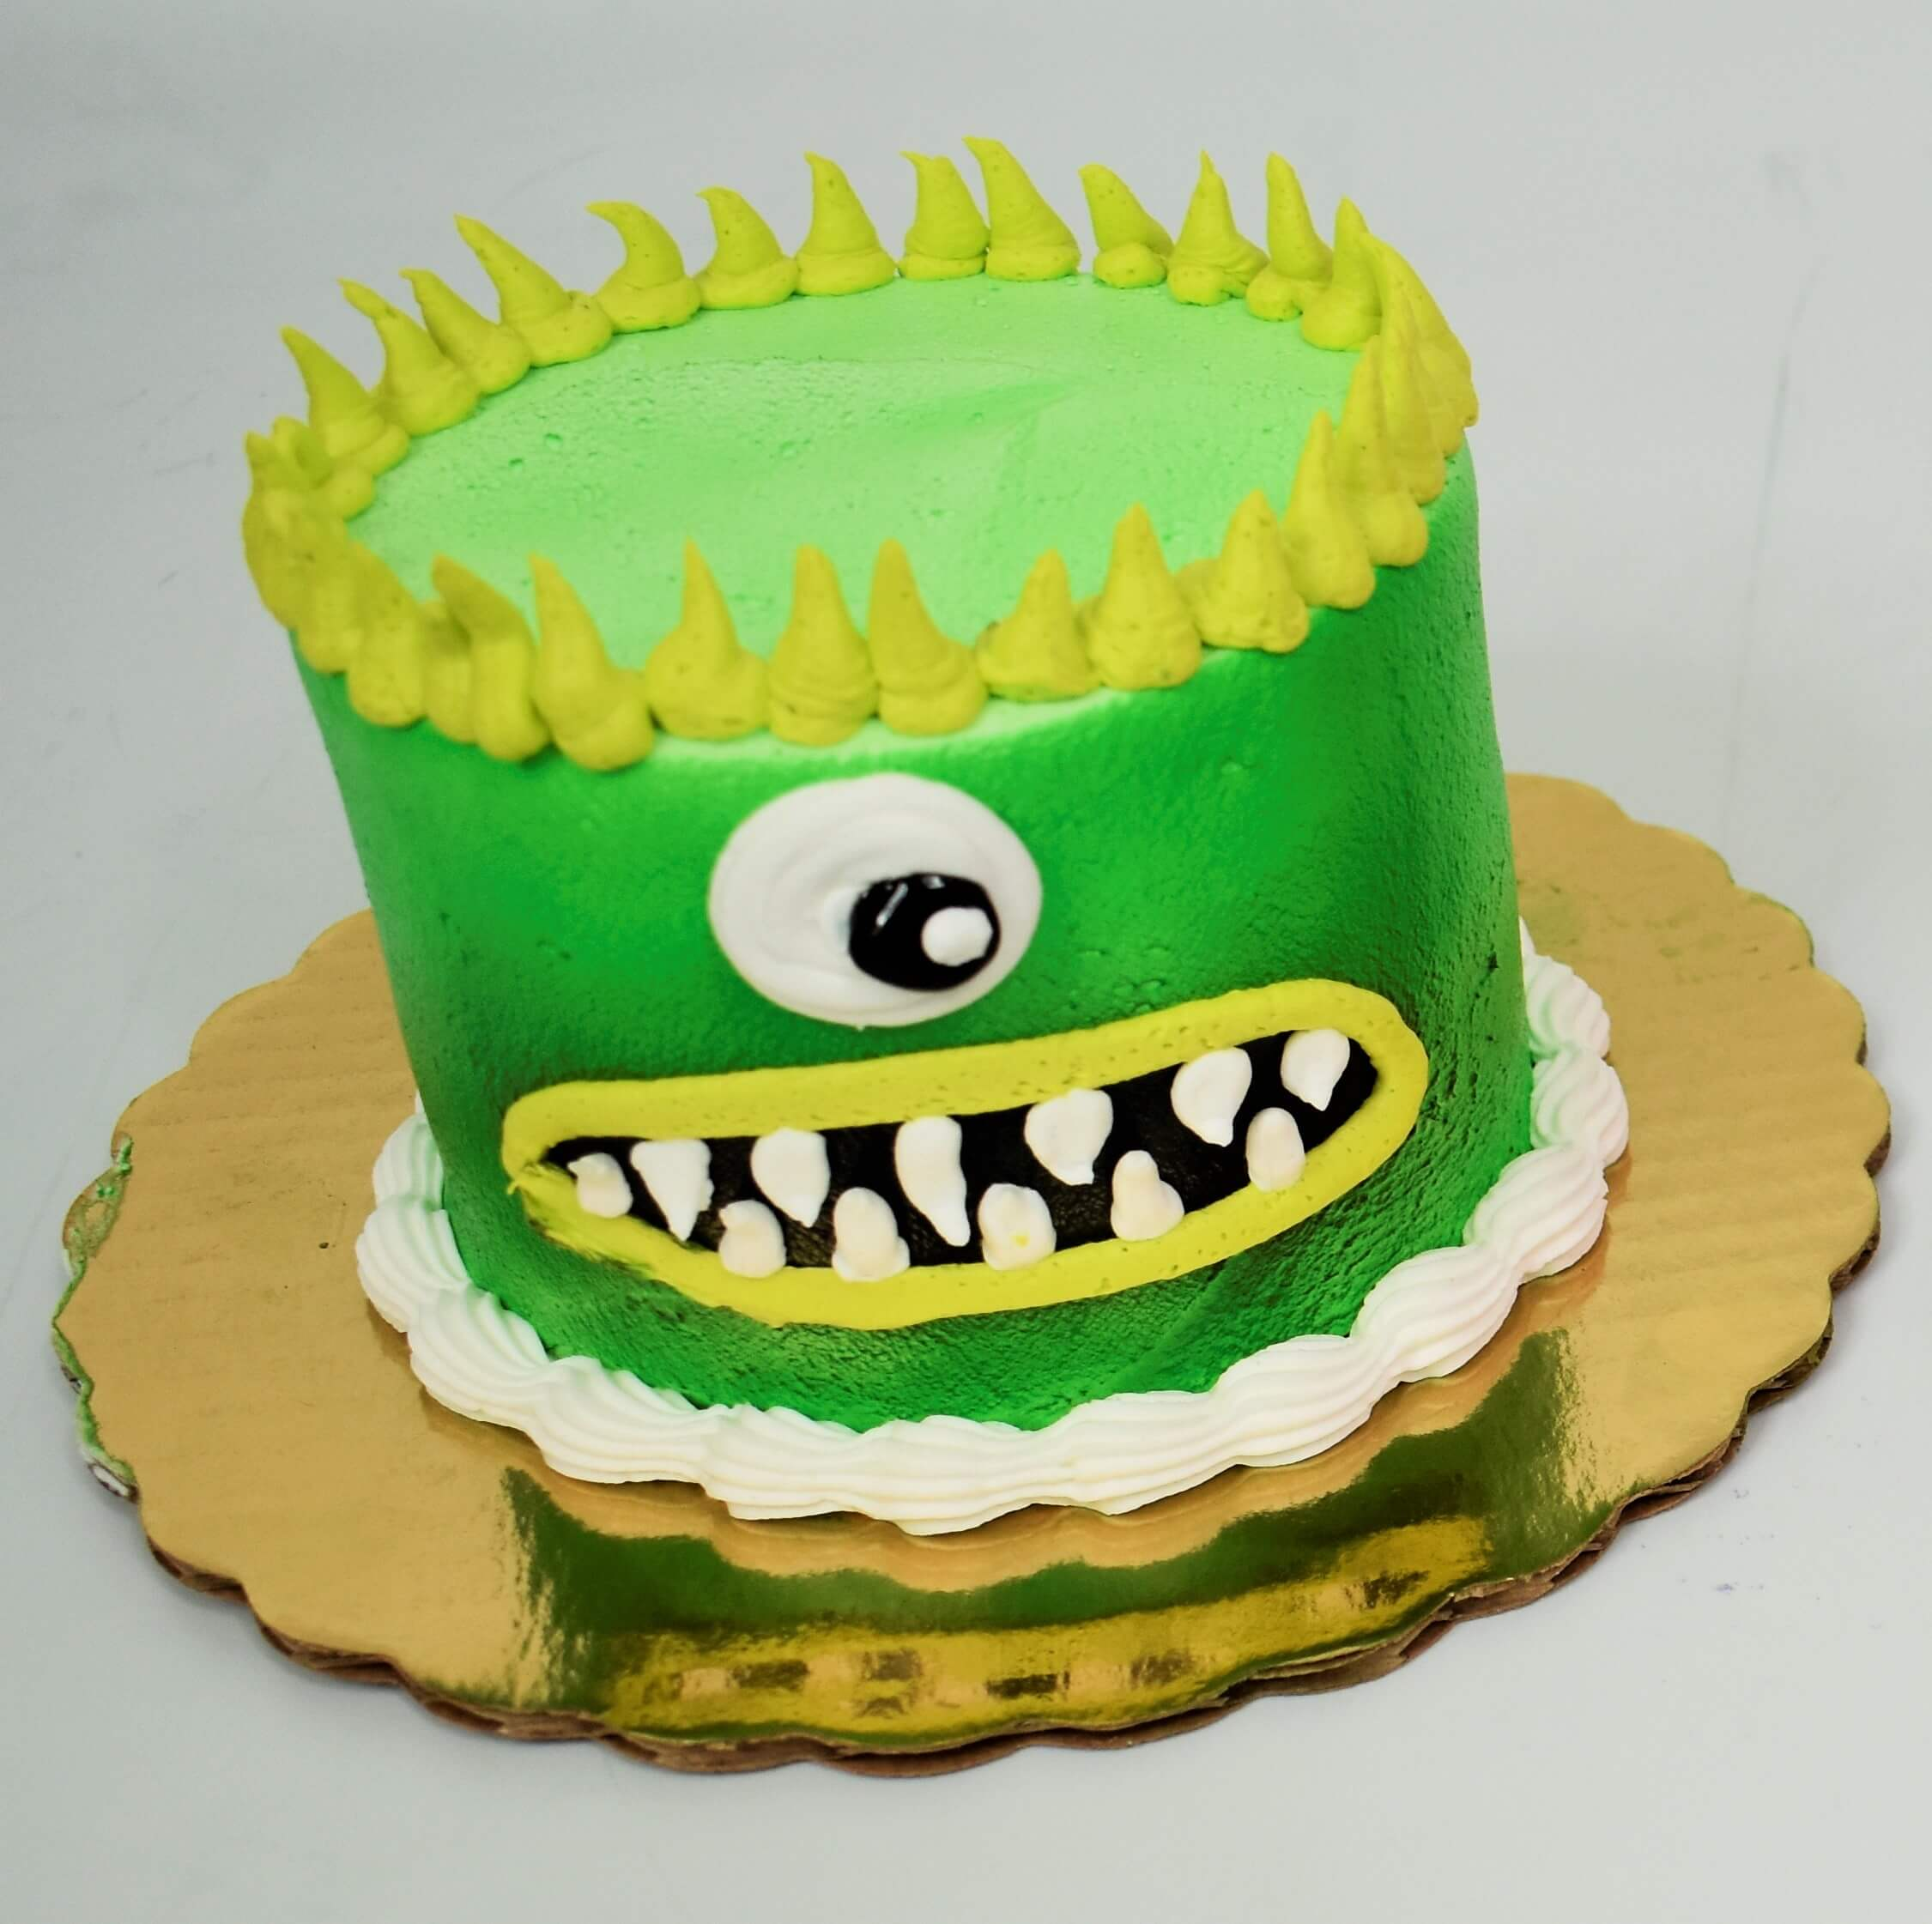 MaArthur's Bakery Custom Cake with Green Monster Face, One eye, Yellow Spikey Hair